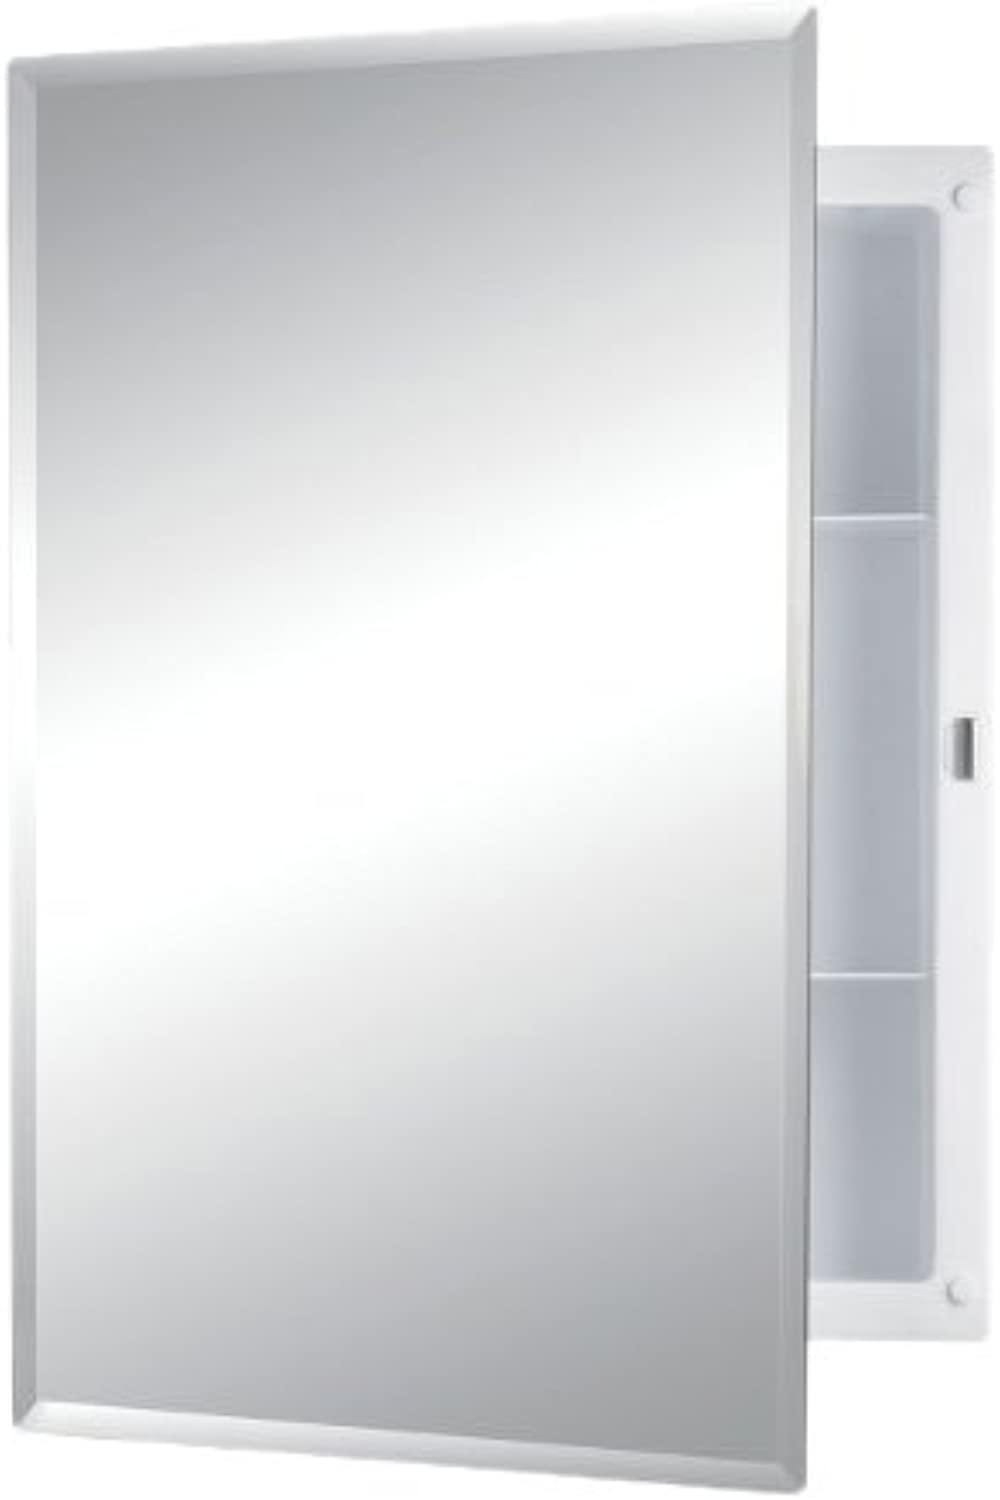 Jensen 781037 Builder Series Frameless Medicine Cabinet with Beveled Edge Mirror, 16-Inch by 22-Inch by 3-3 4-Inch